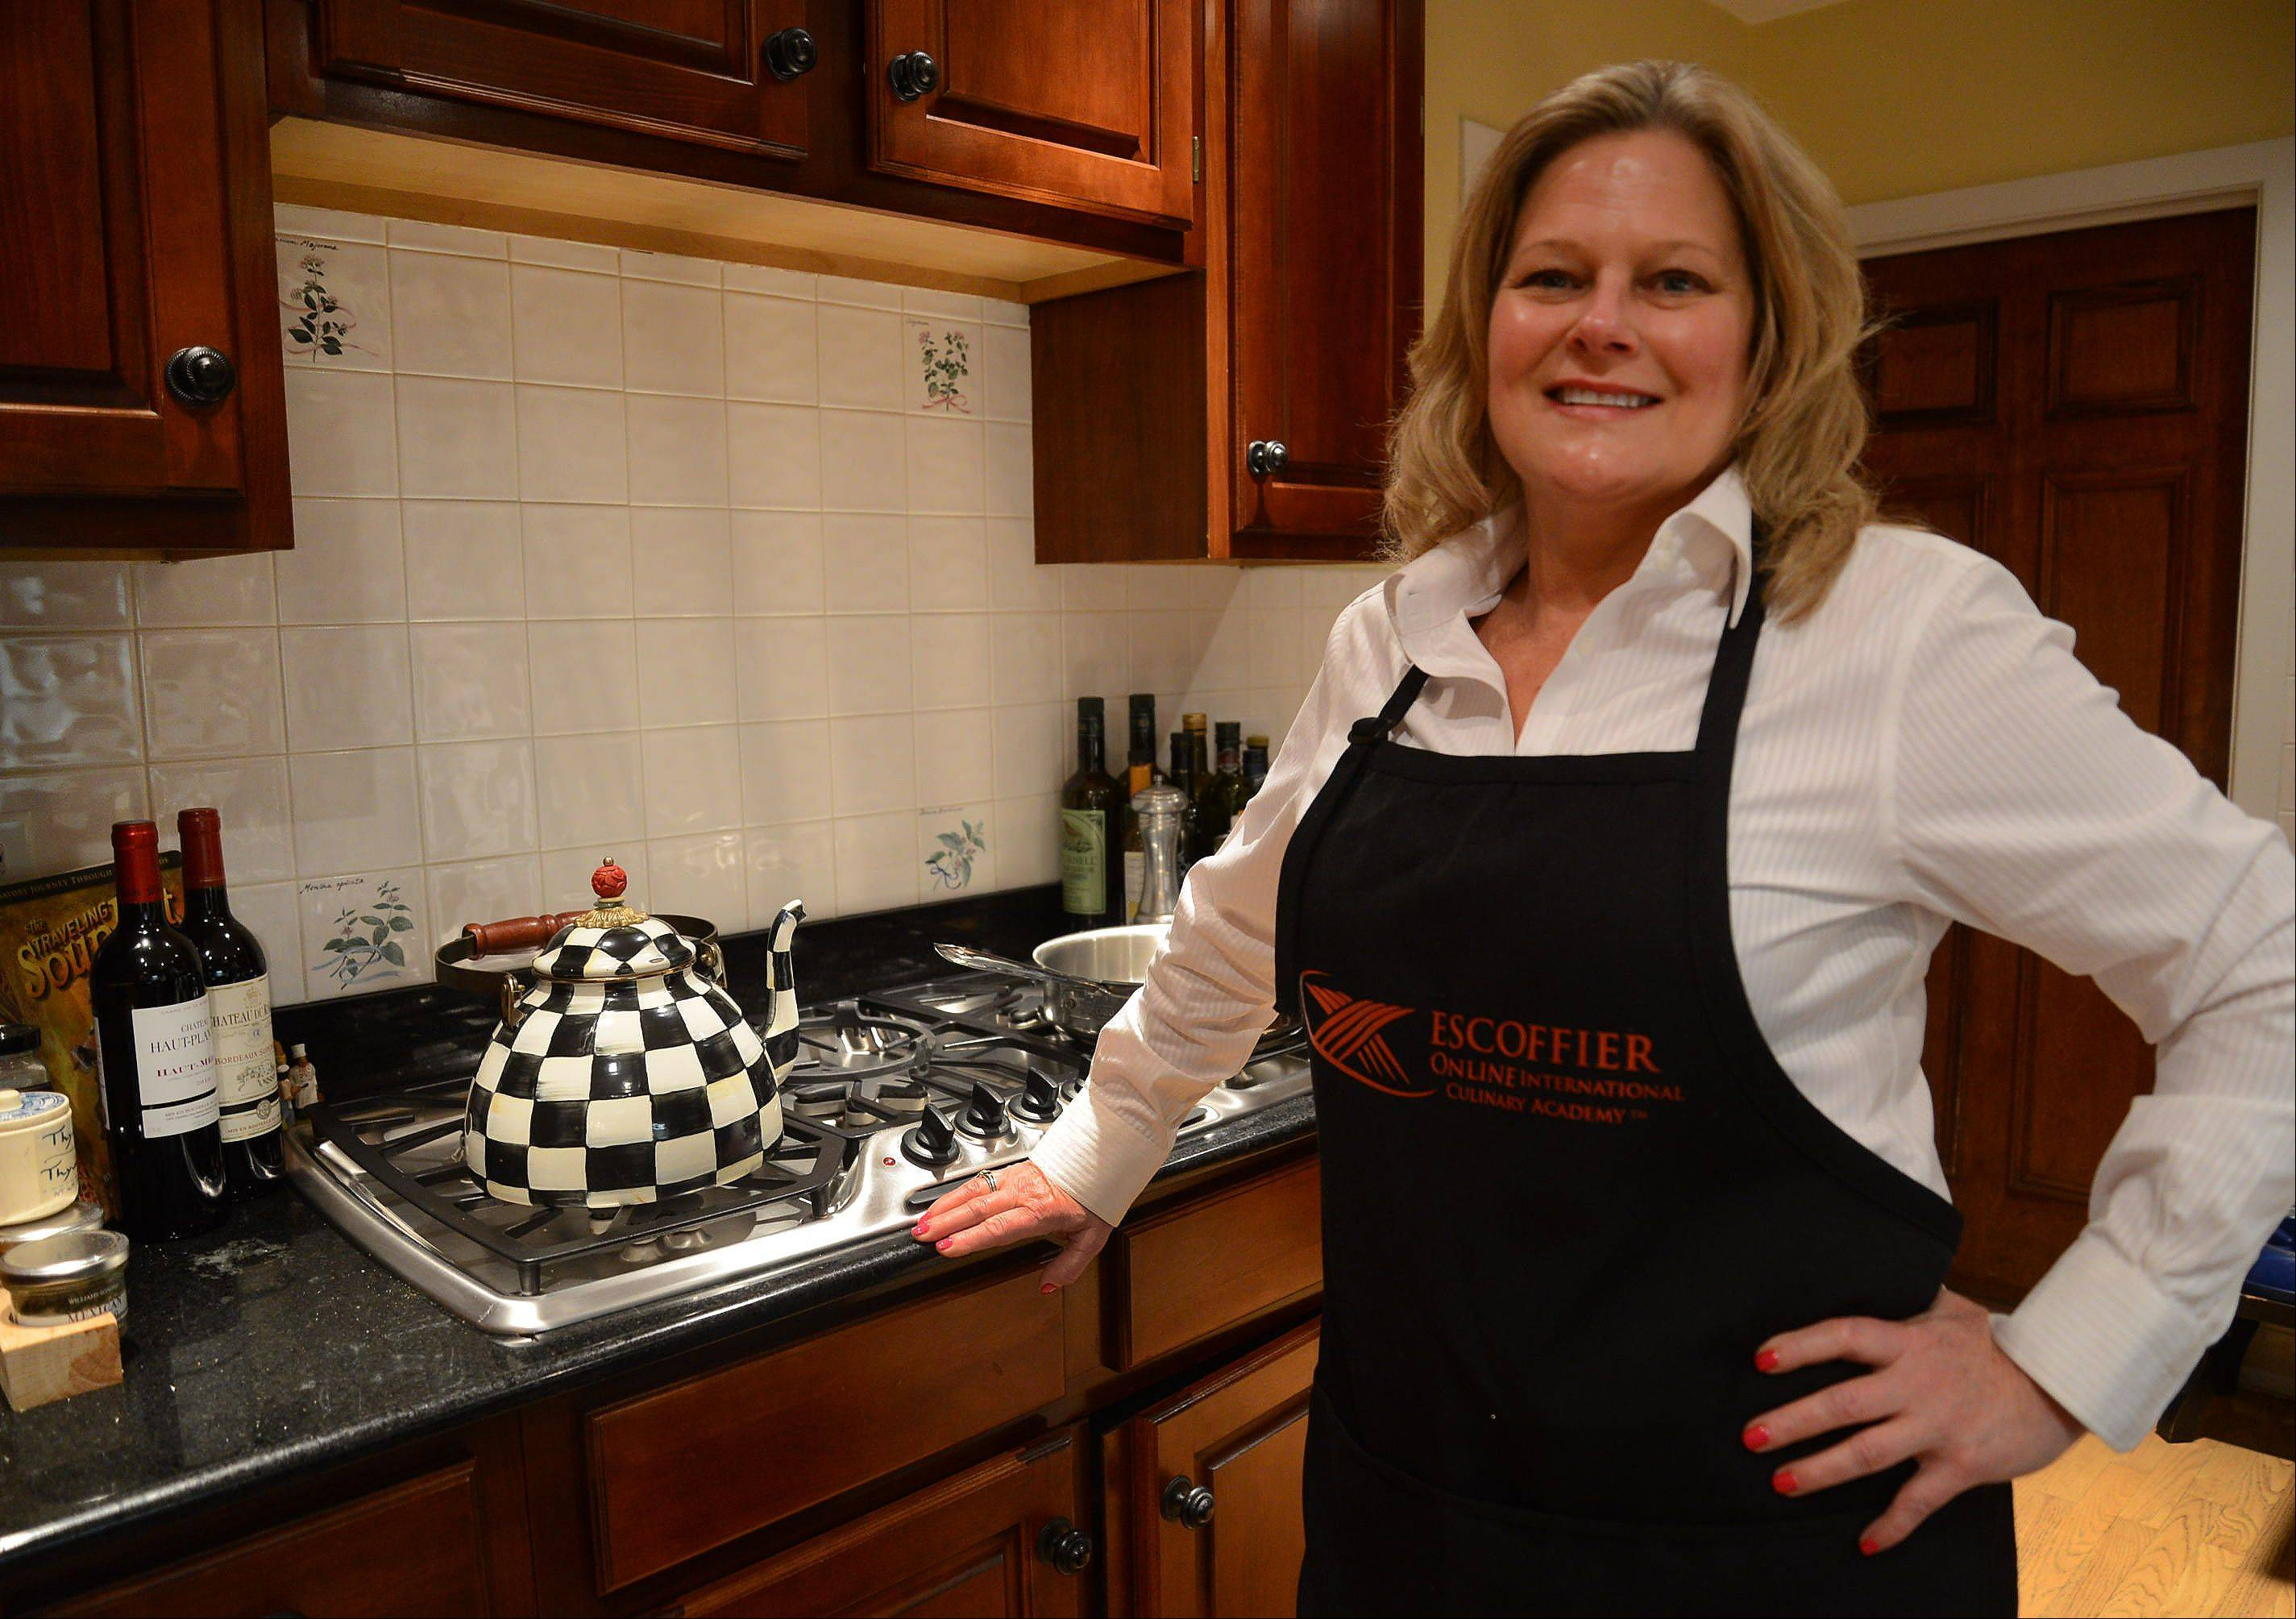 Anne Gulotta honed her kitchen skills with the Escoffier Online International Culinary Academy. She plans to brush up on baking next.